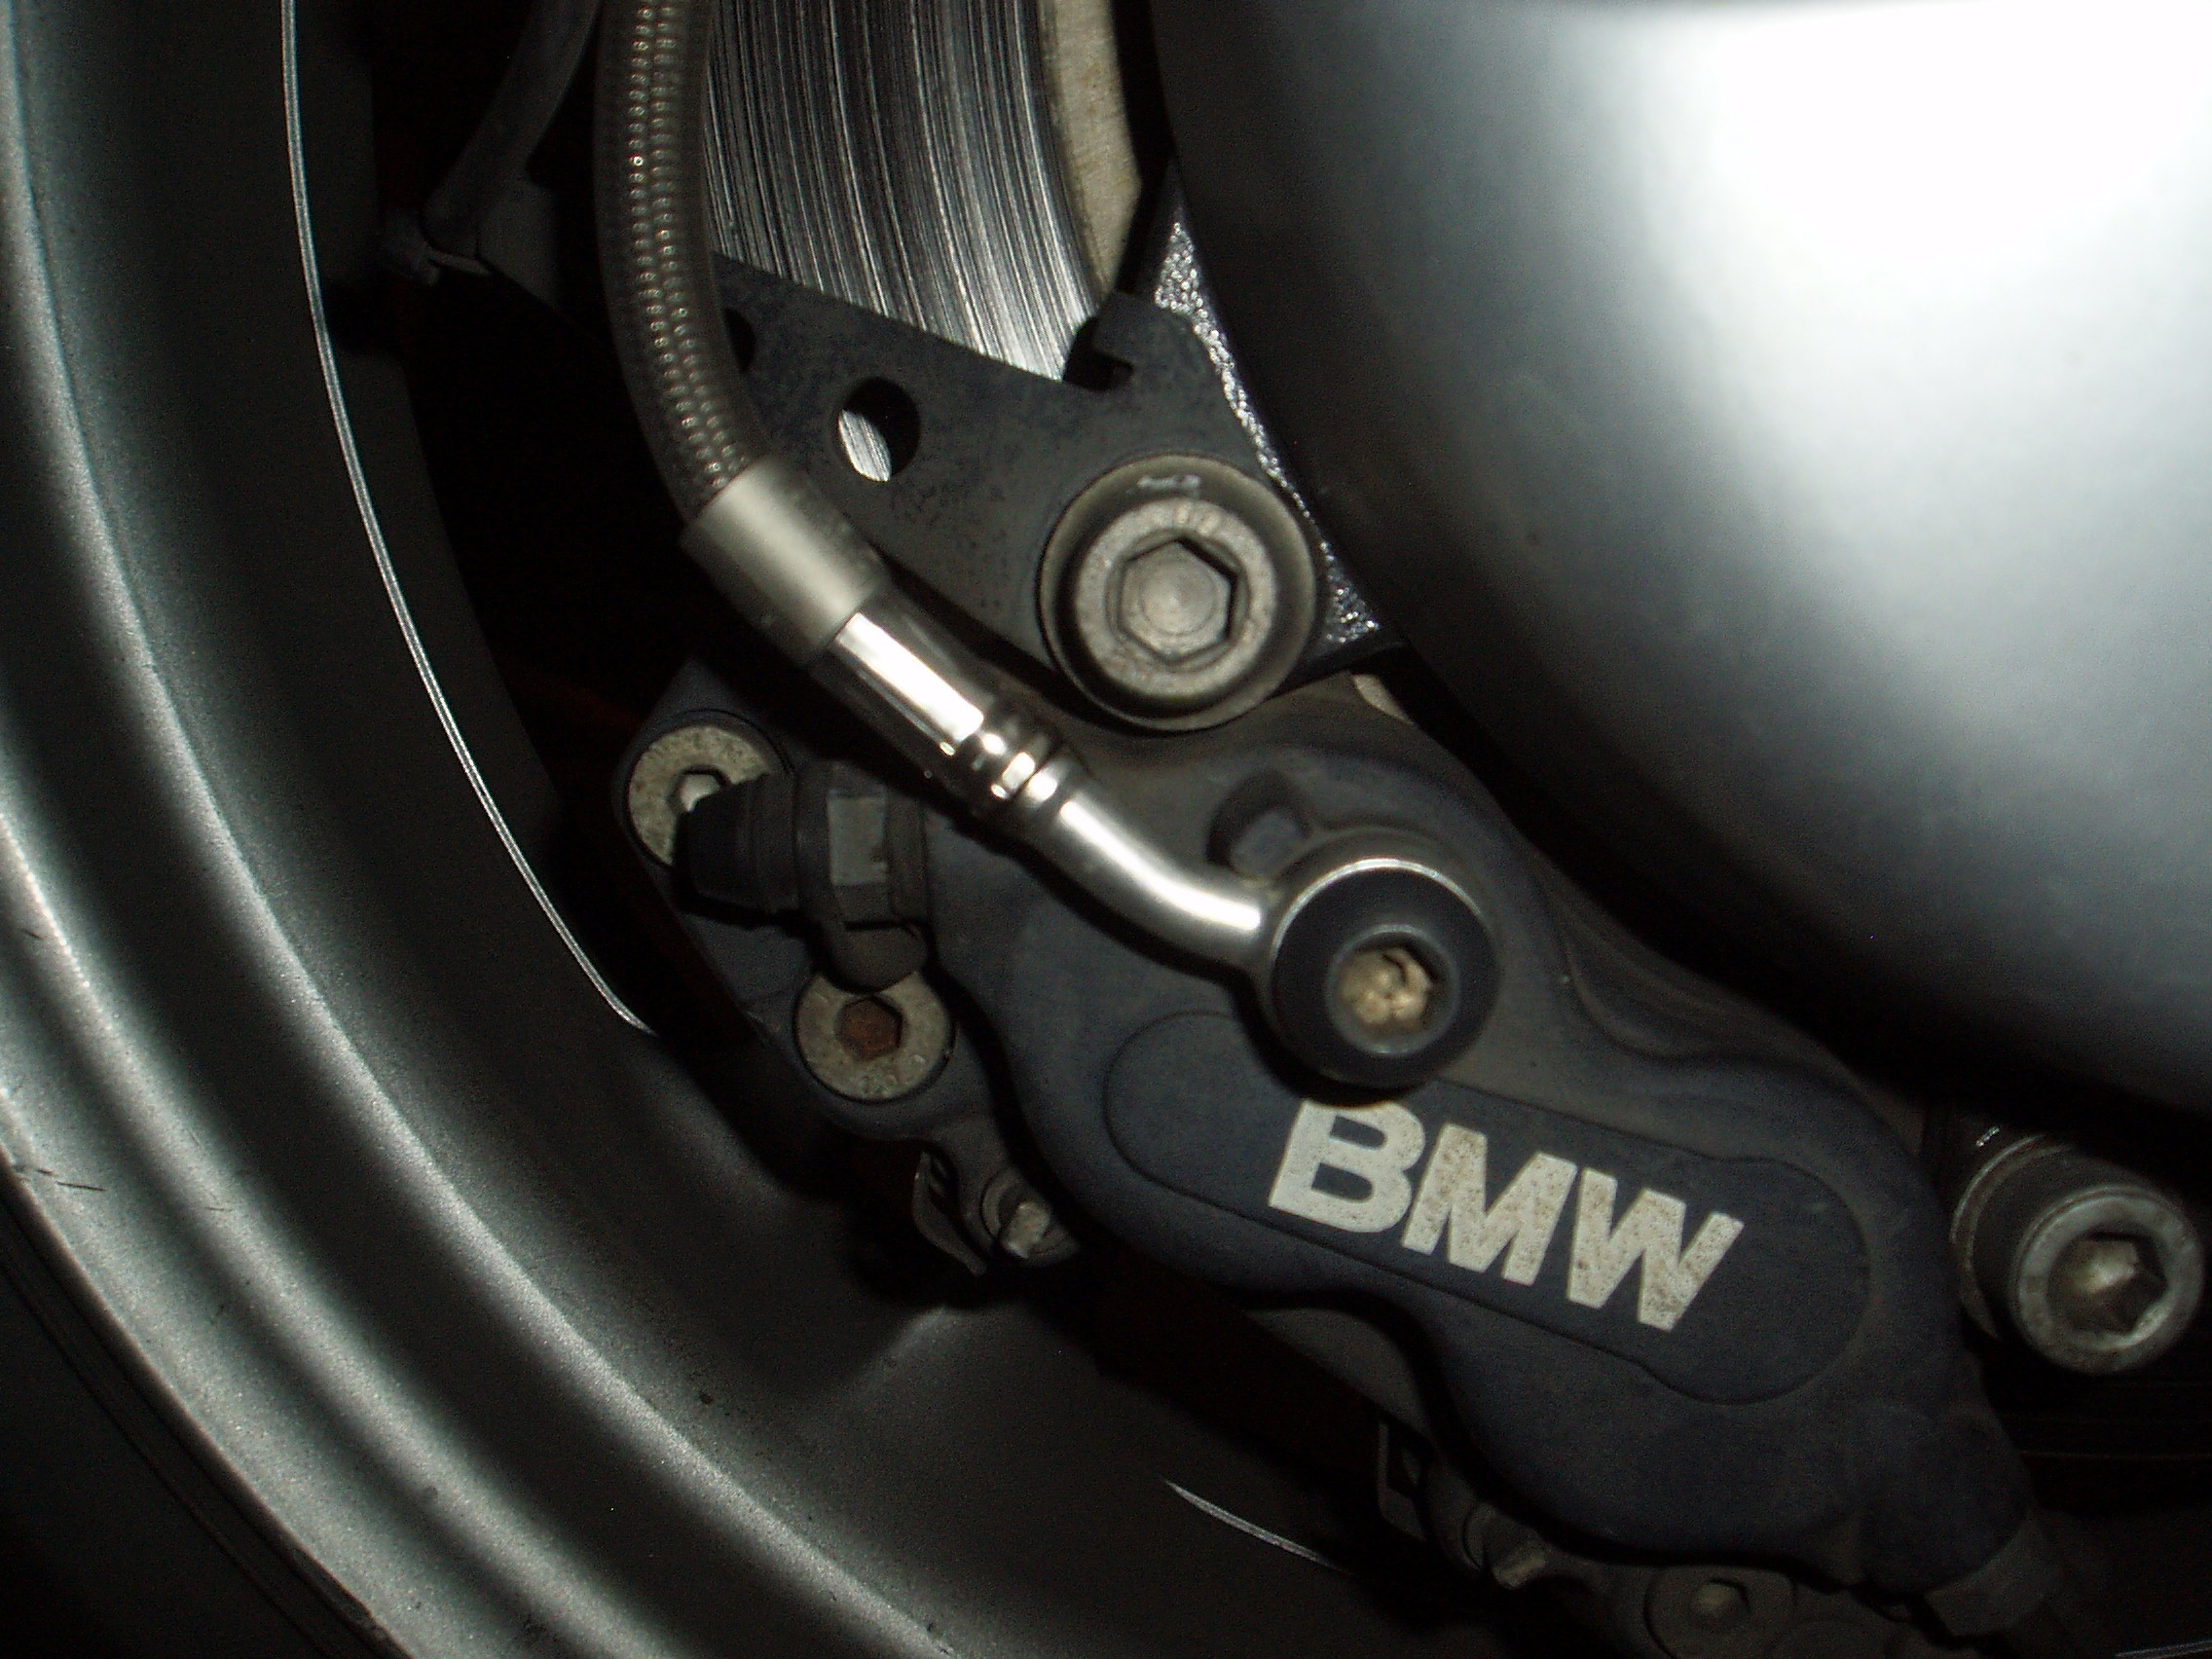 Spiegler brake lines: angle of the rear banjo fitting? - BMW